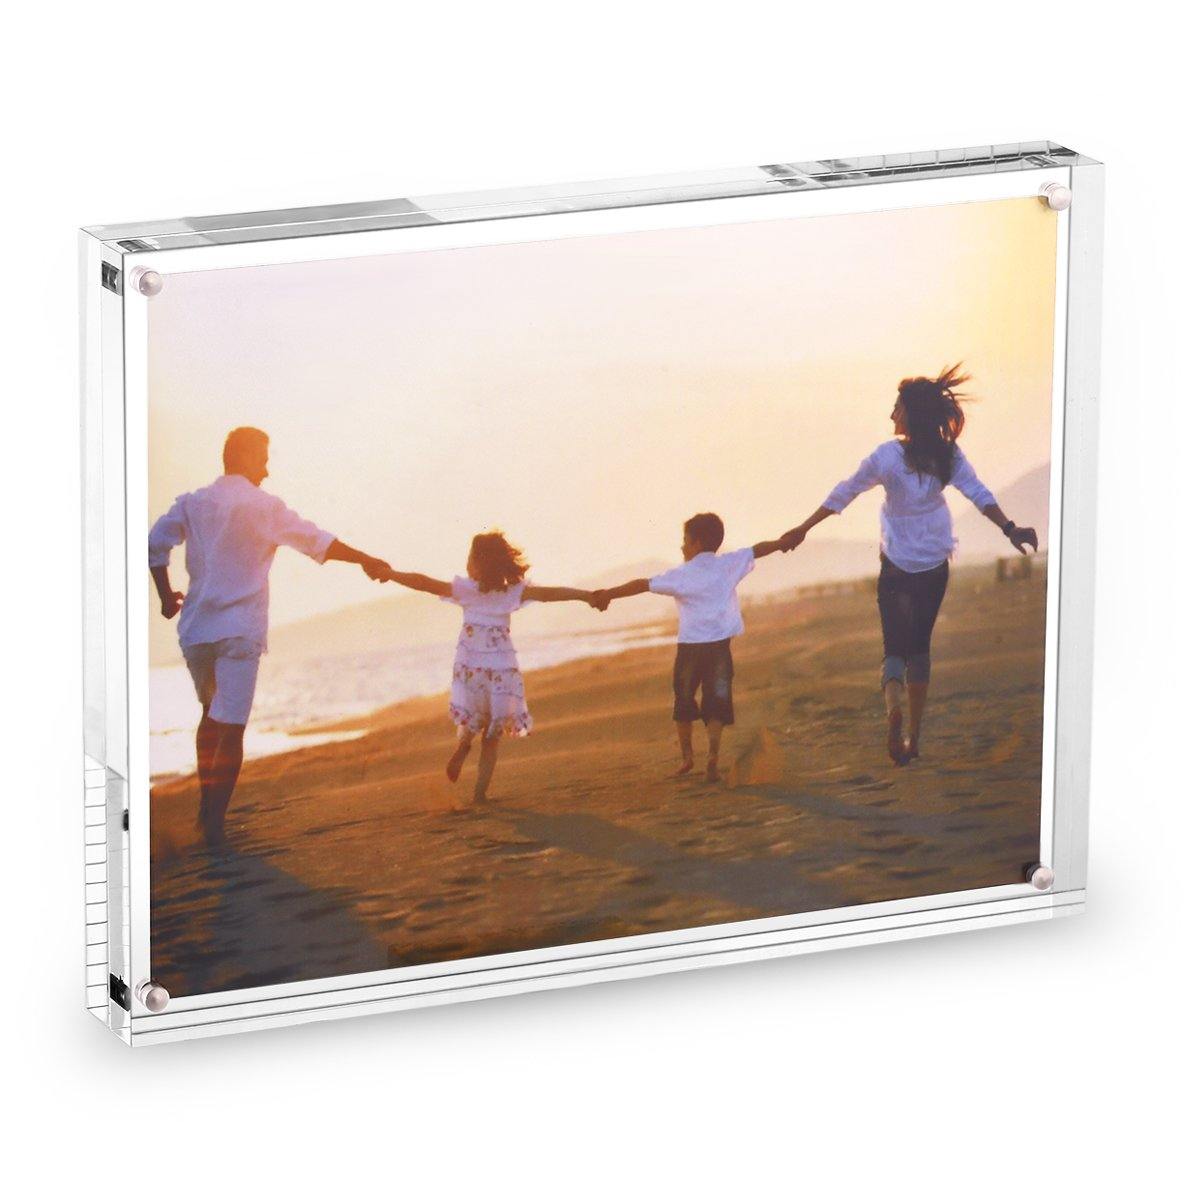 HESIN 8.5 by 11 inch Clear Acrylic Photo Frame Thickness 30mm ,Stable Tabletop Magnet Frame Double Sided Picture frame with Gift Box Package